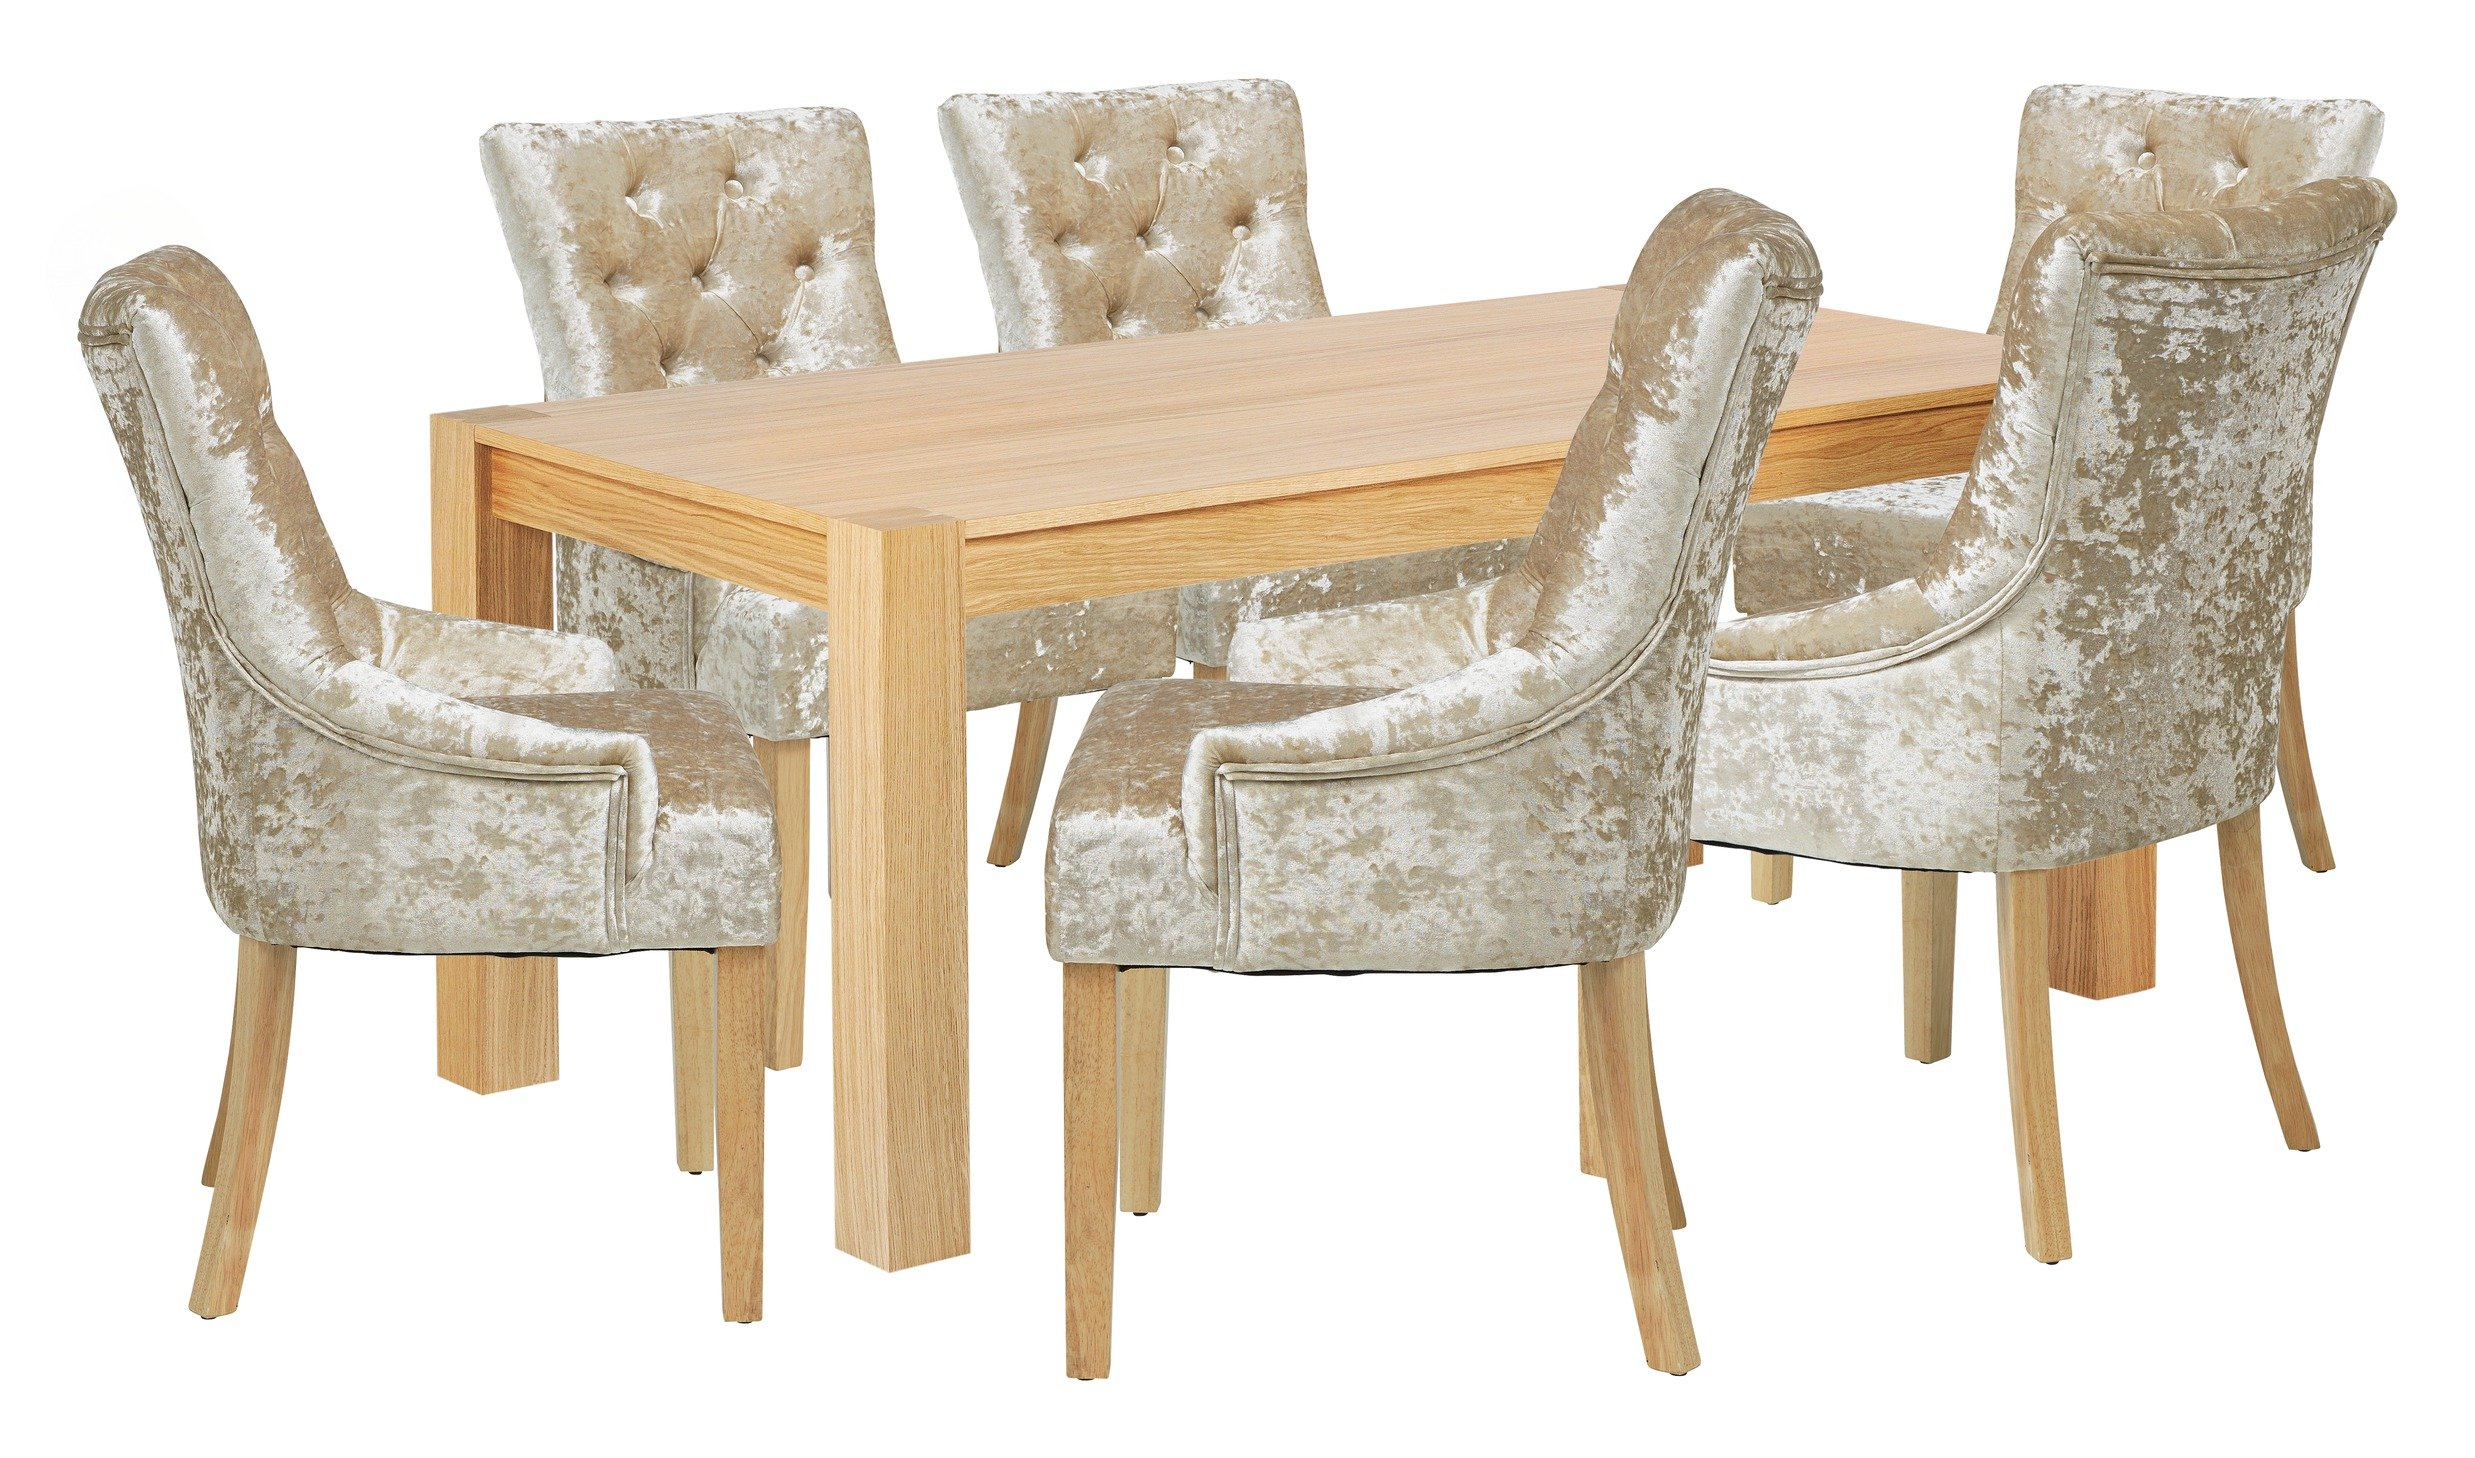 Image of Heart of House Halwick Oak Veneer Table & 6 Chairs - Champ